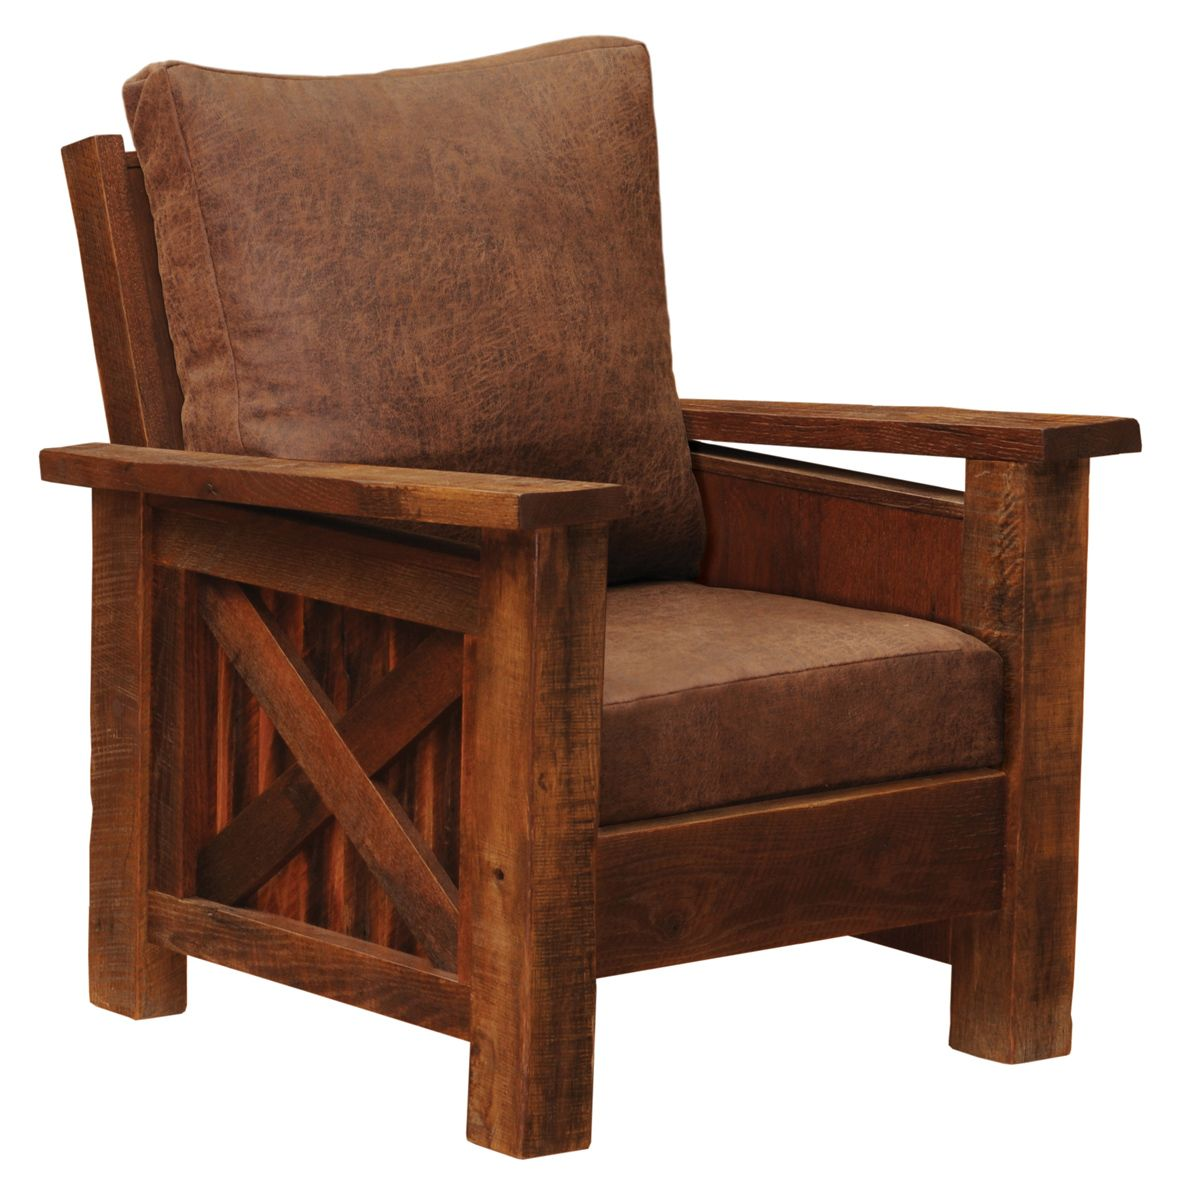 Braden Lounge Chair